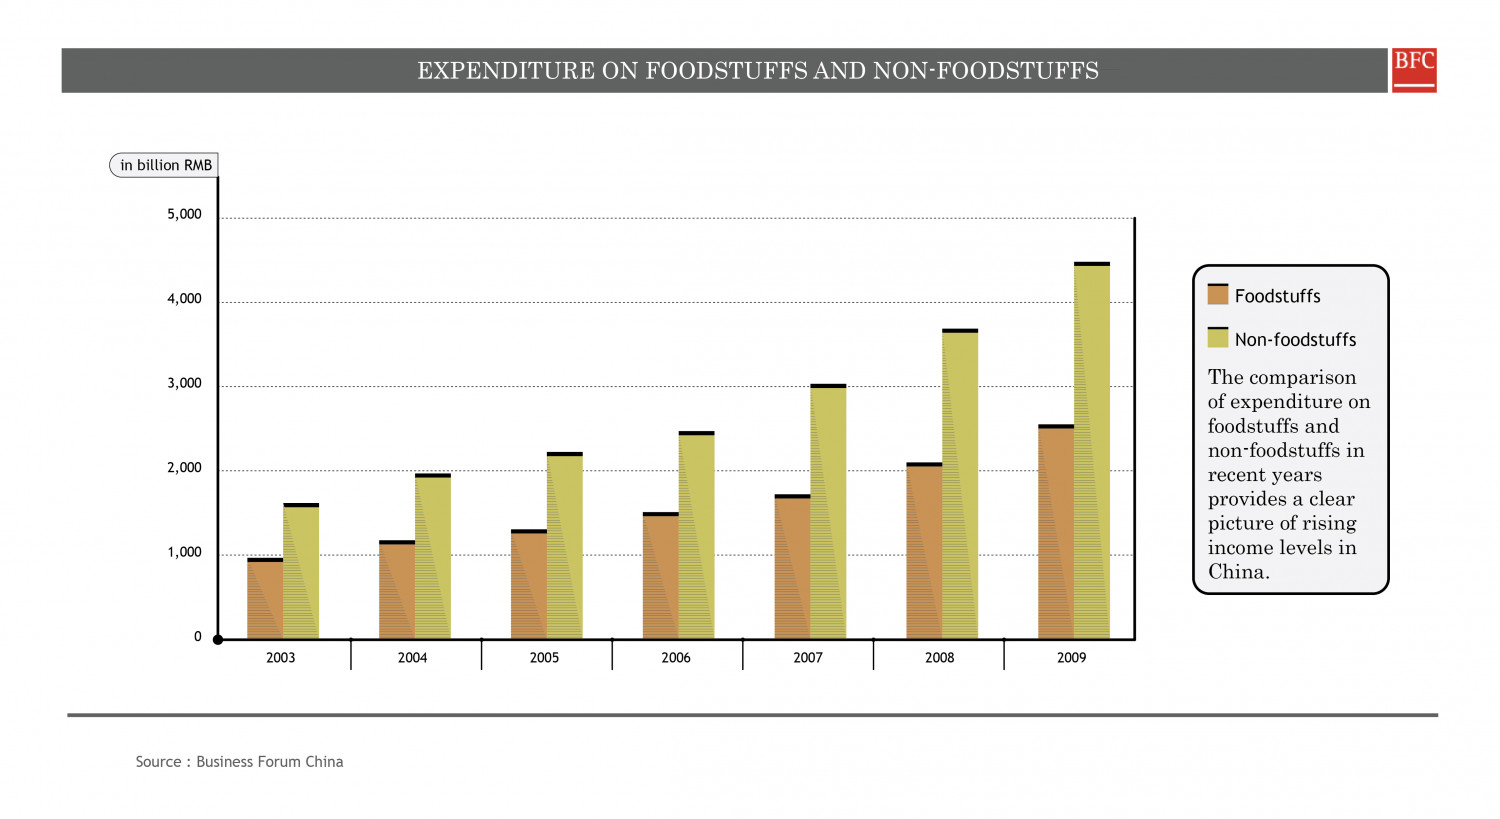 EXPENDITURE ON FOODSTUFFS AND NON-FOODSTUFFS Infographic